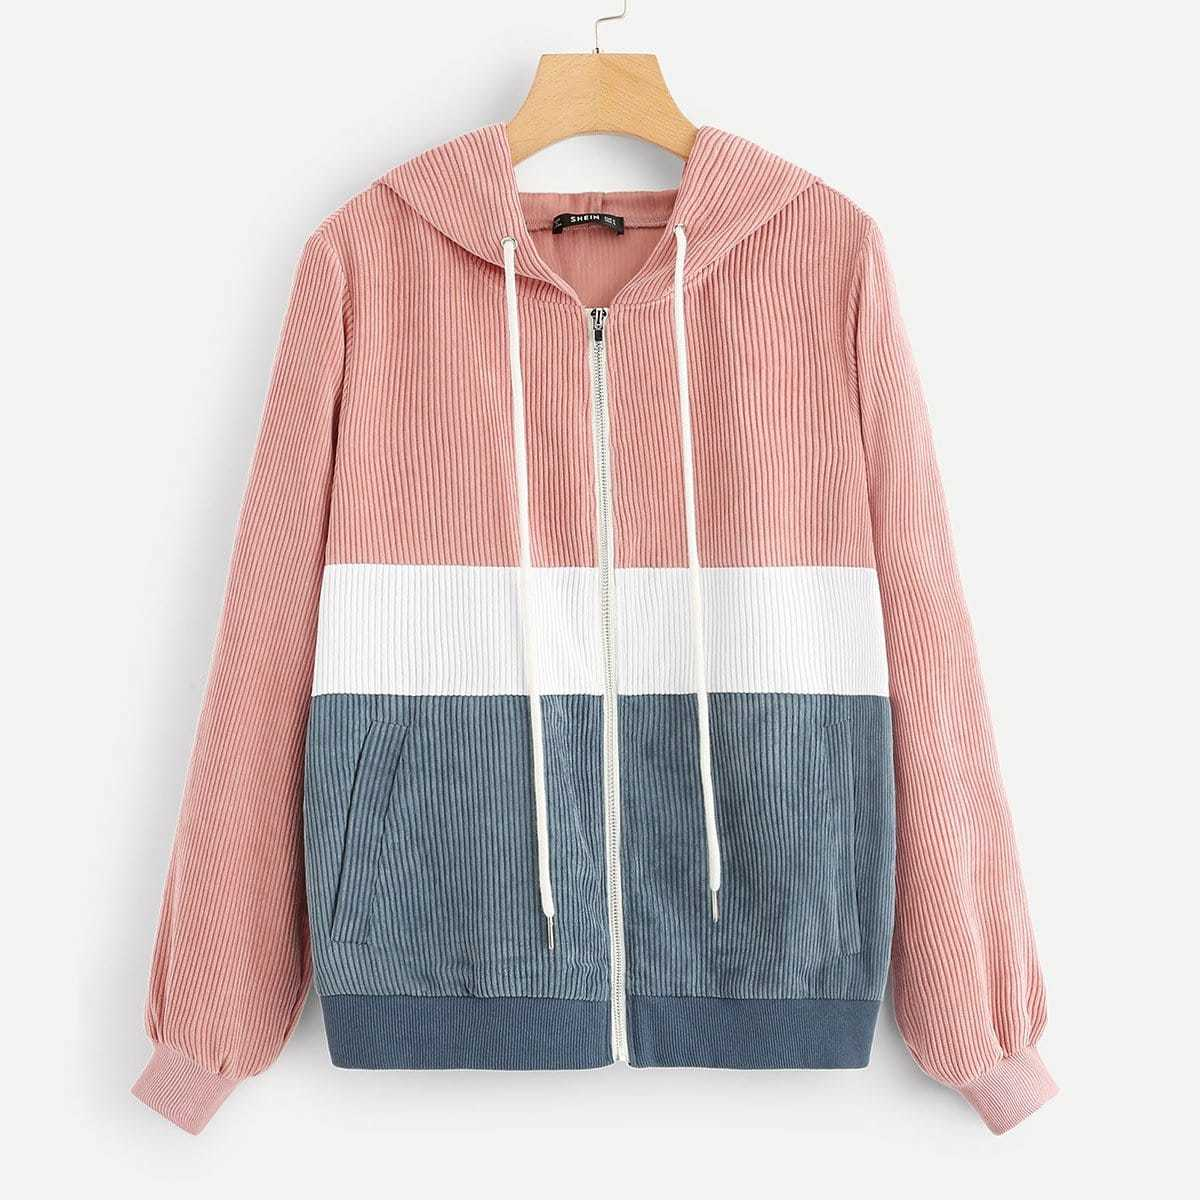 Colorblock Zip Front Drawstring Hooded Corduroy Jacket in Multicolor by ROMWE on GOOFASH